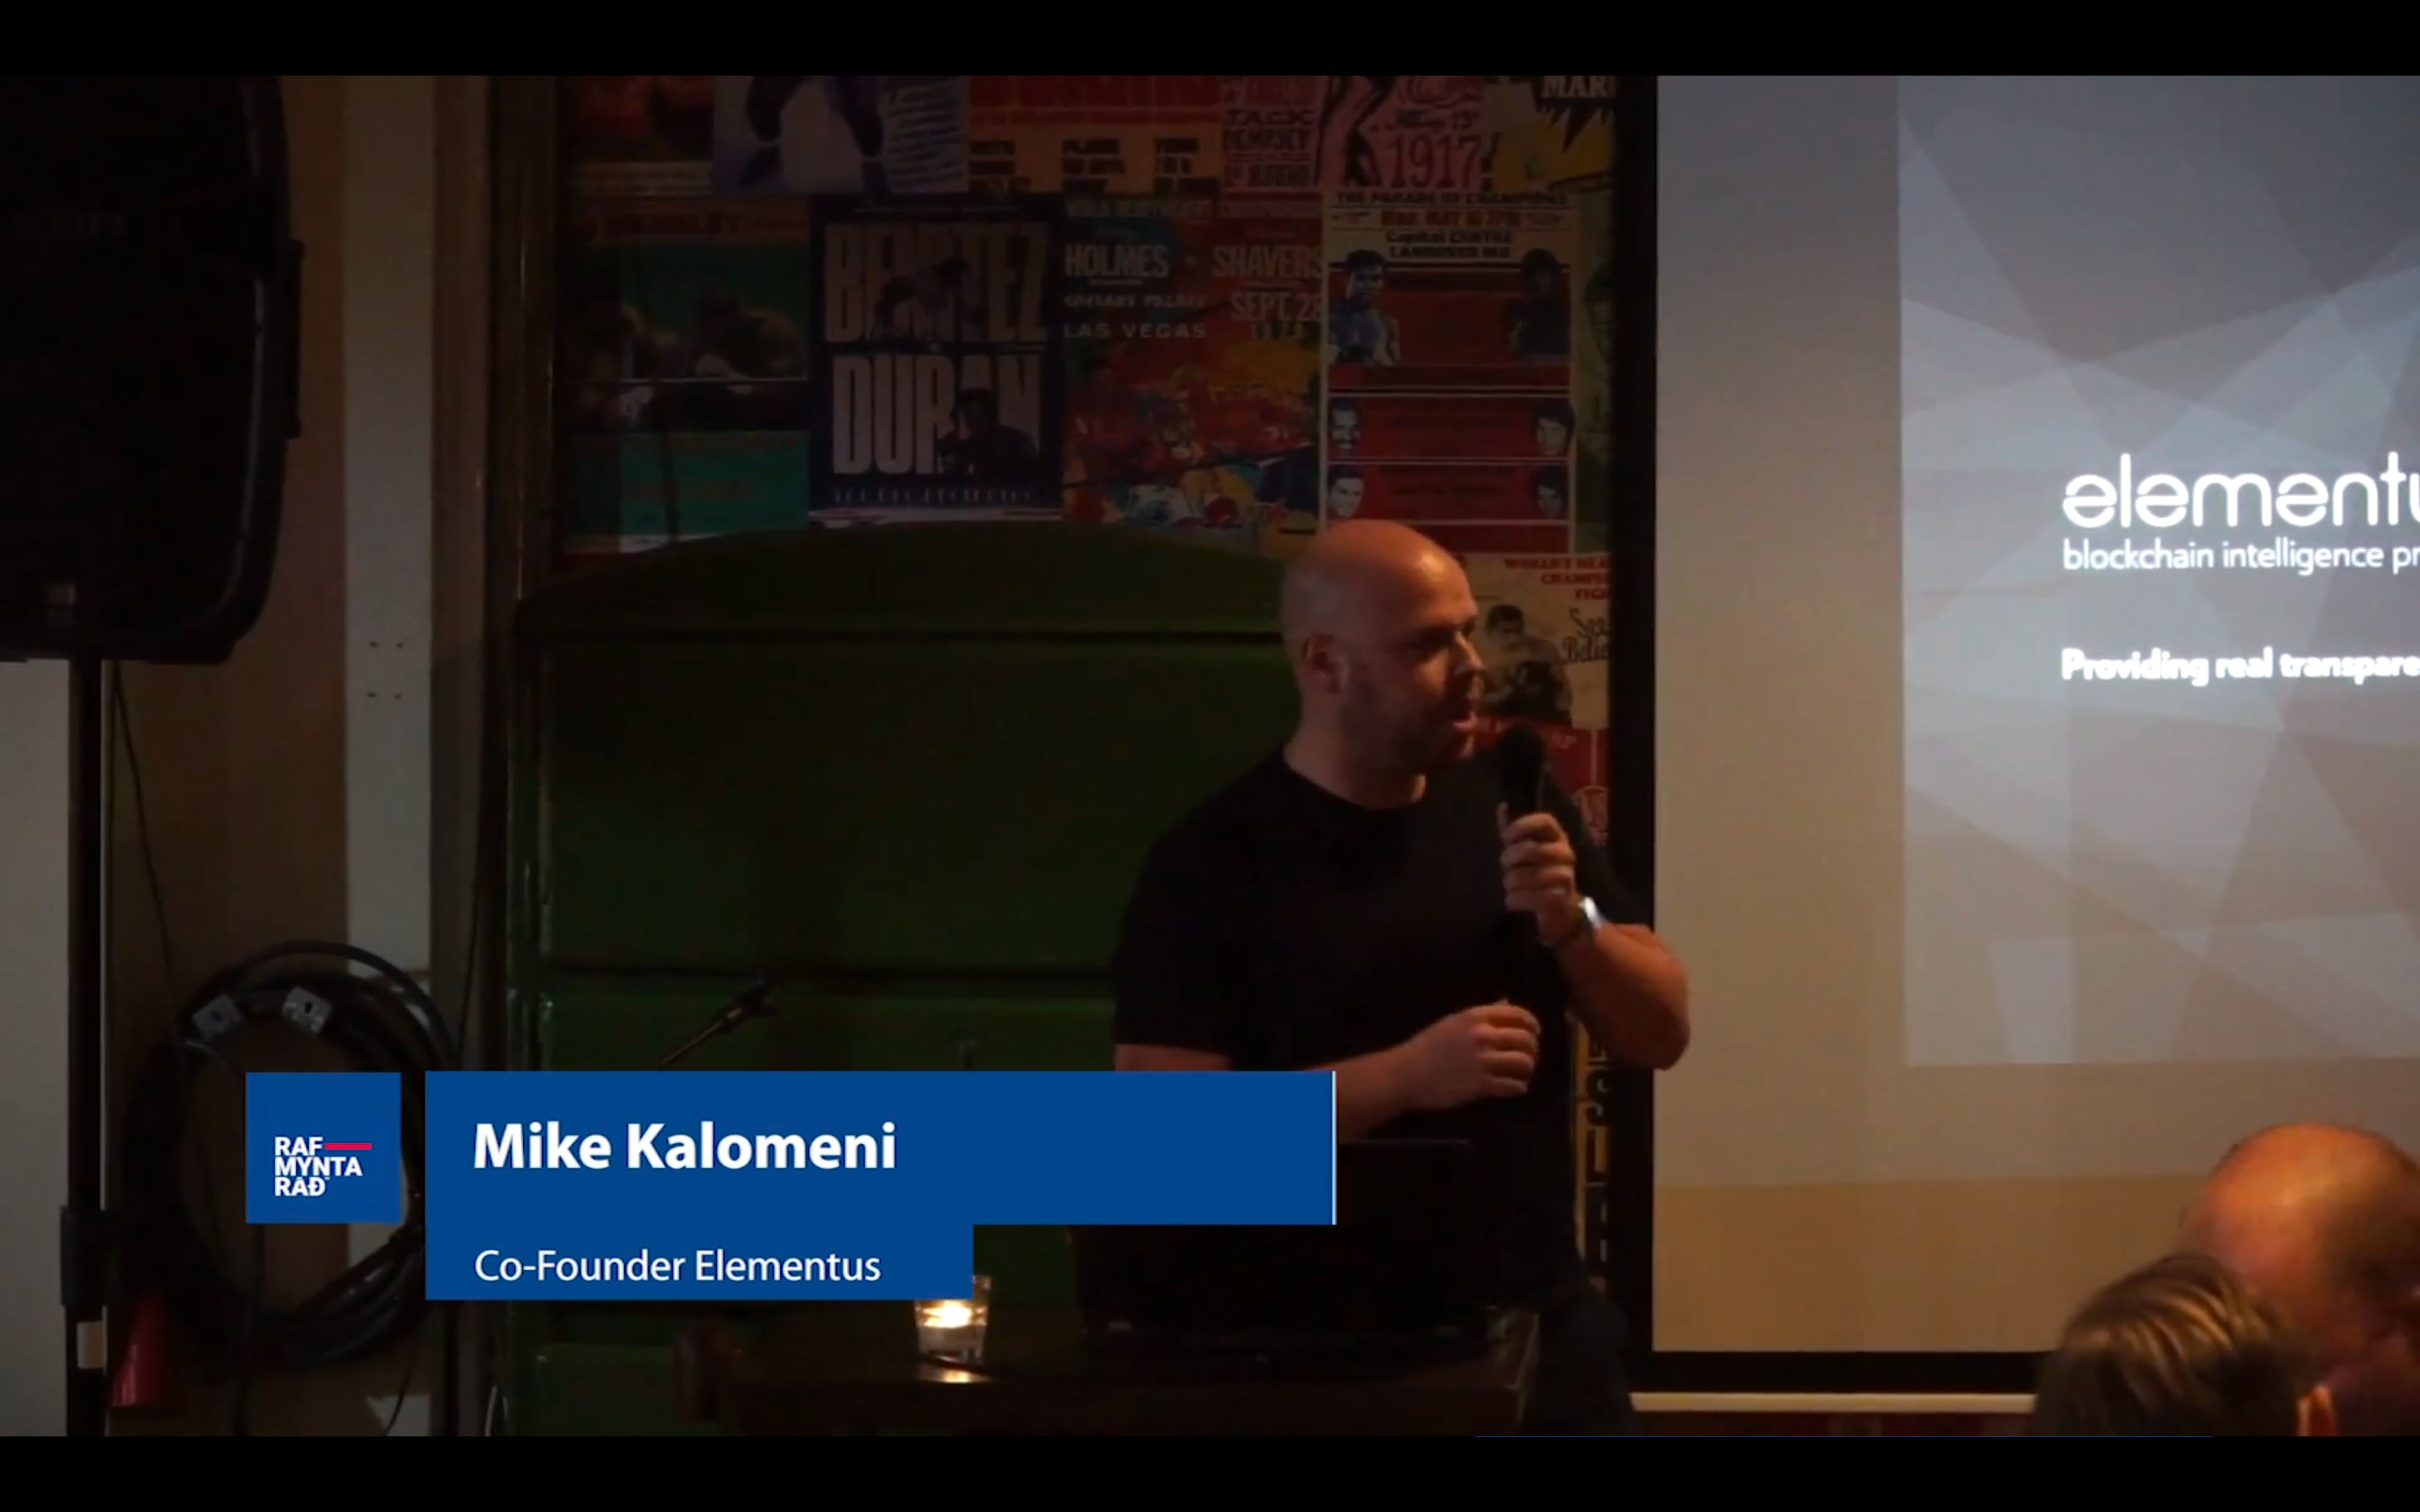 Providing real transparency of Ethereum to all - Mike Kalomeni